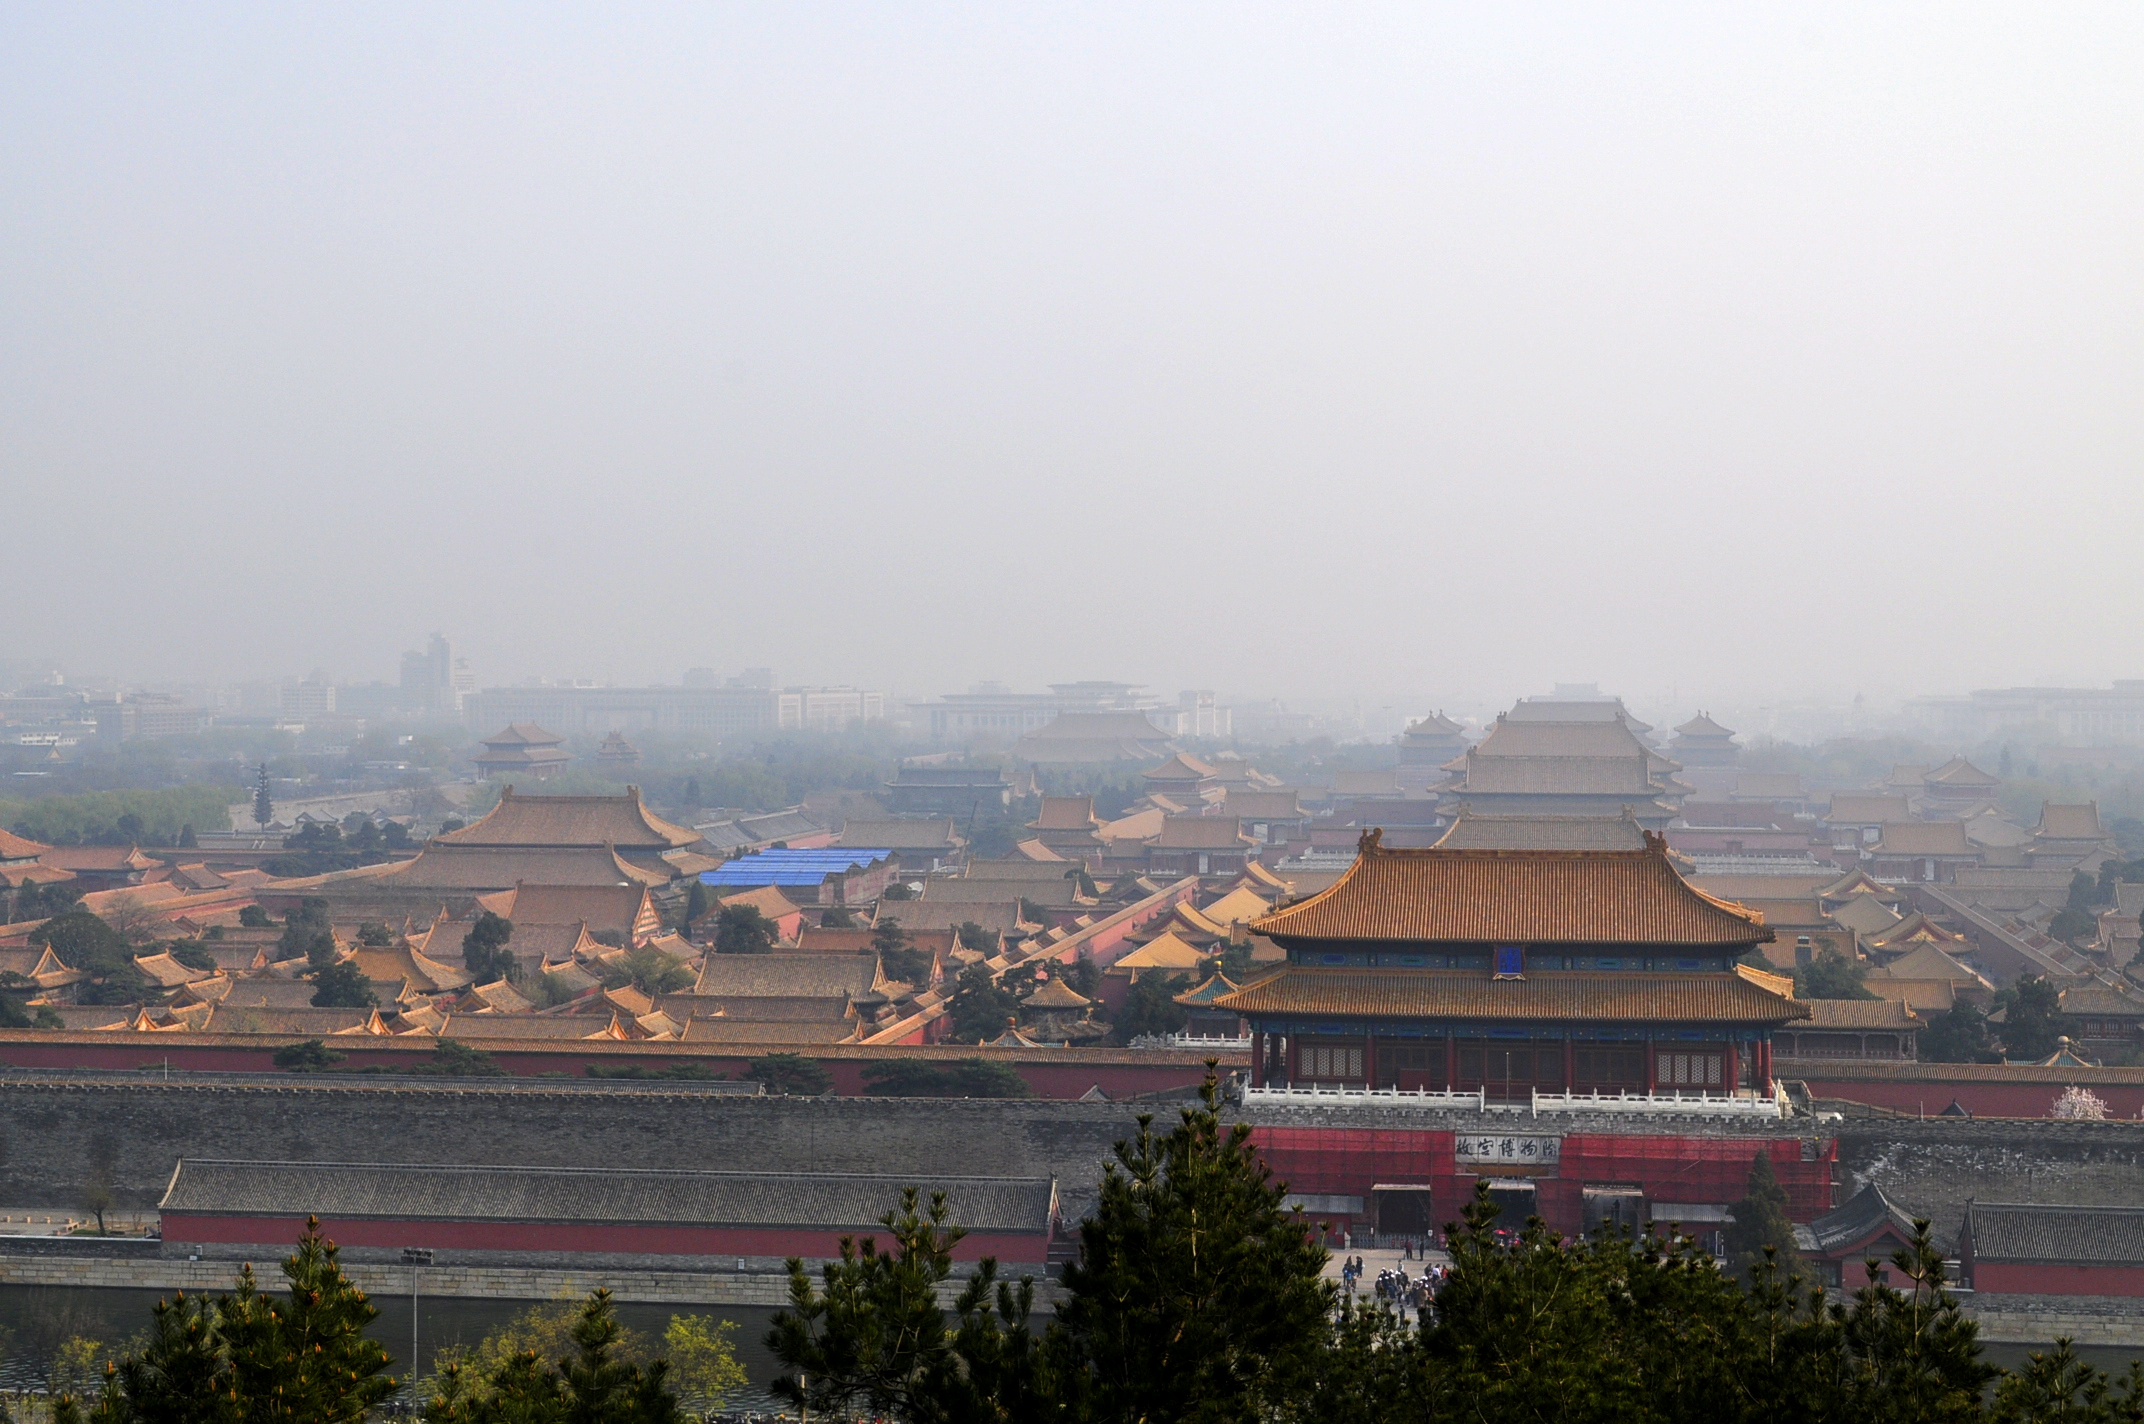 Jingshan Park overlooking Forbidden City, Beijing, China